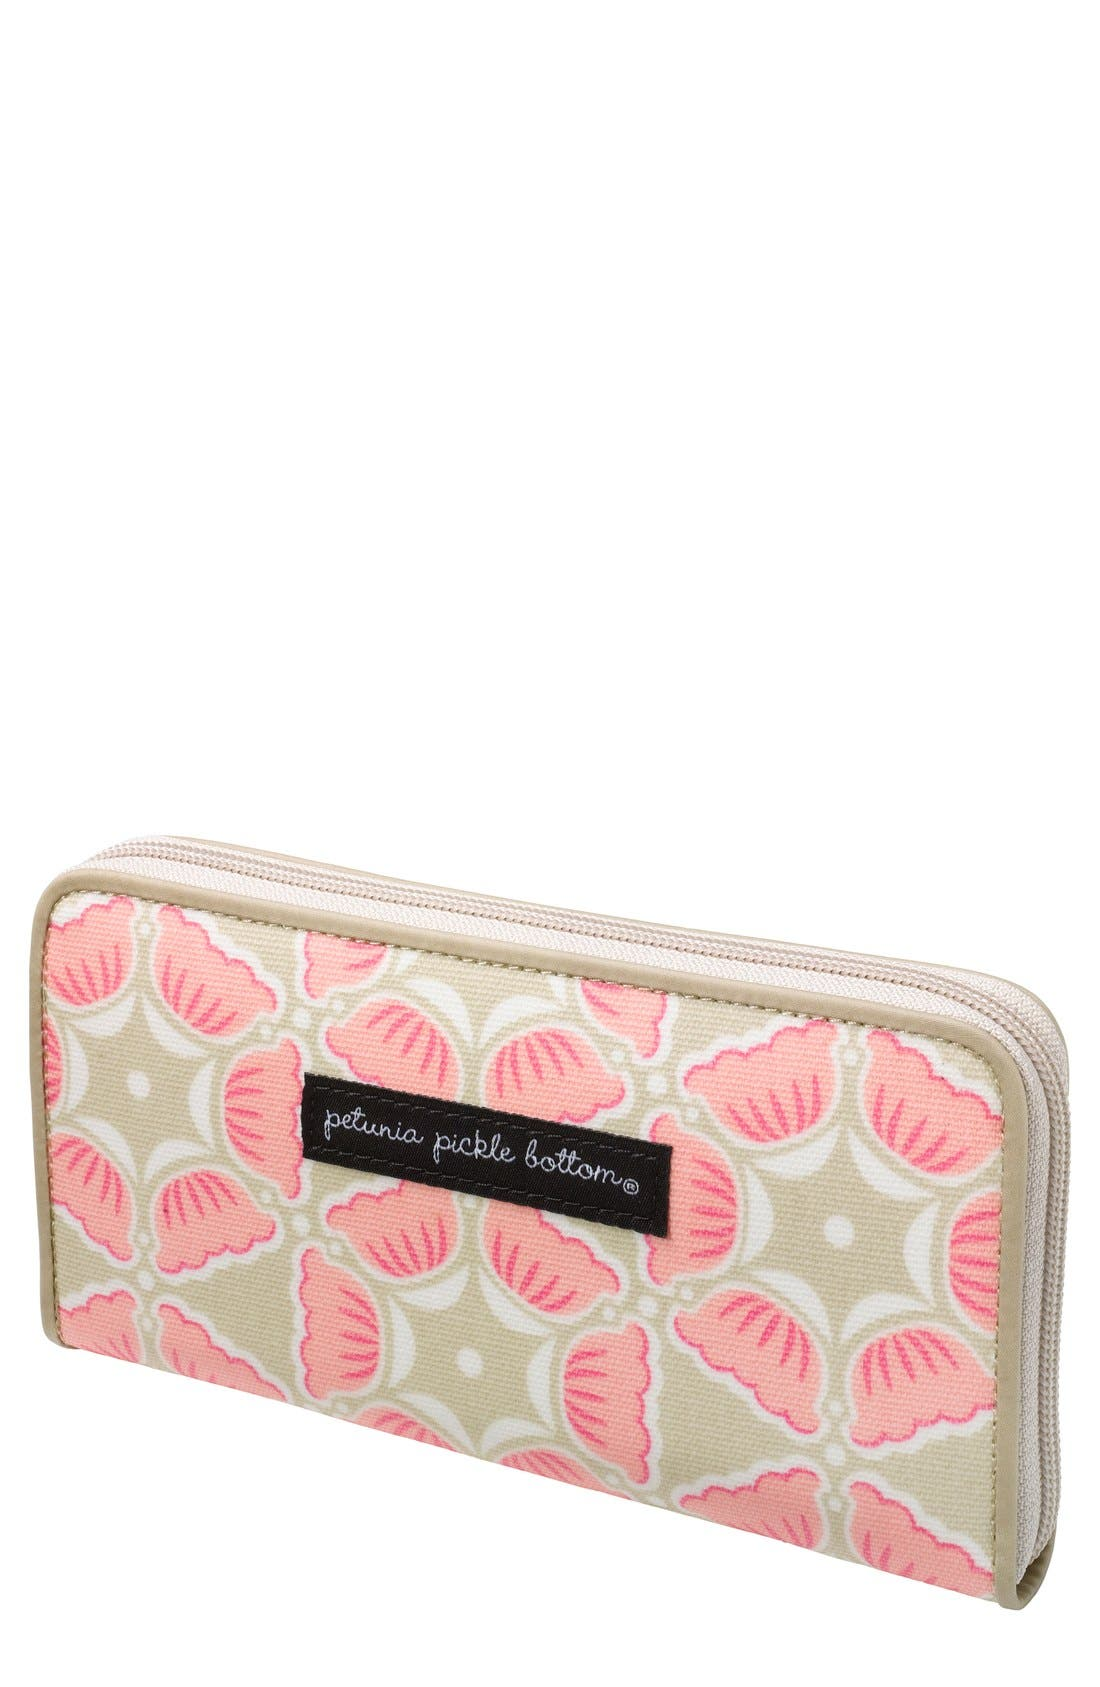 Alternate Image 1 Selected - Petunia Pickle Bottom 'Wanderlust' Wallet